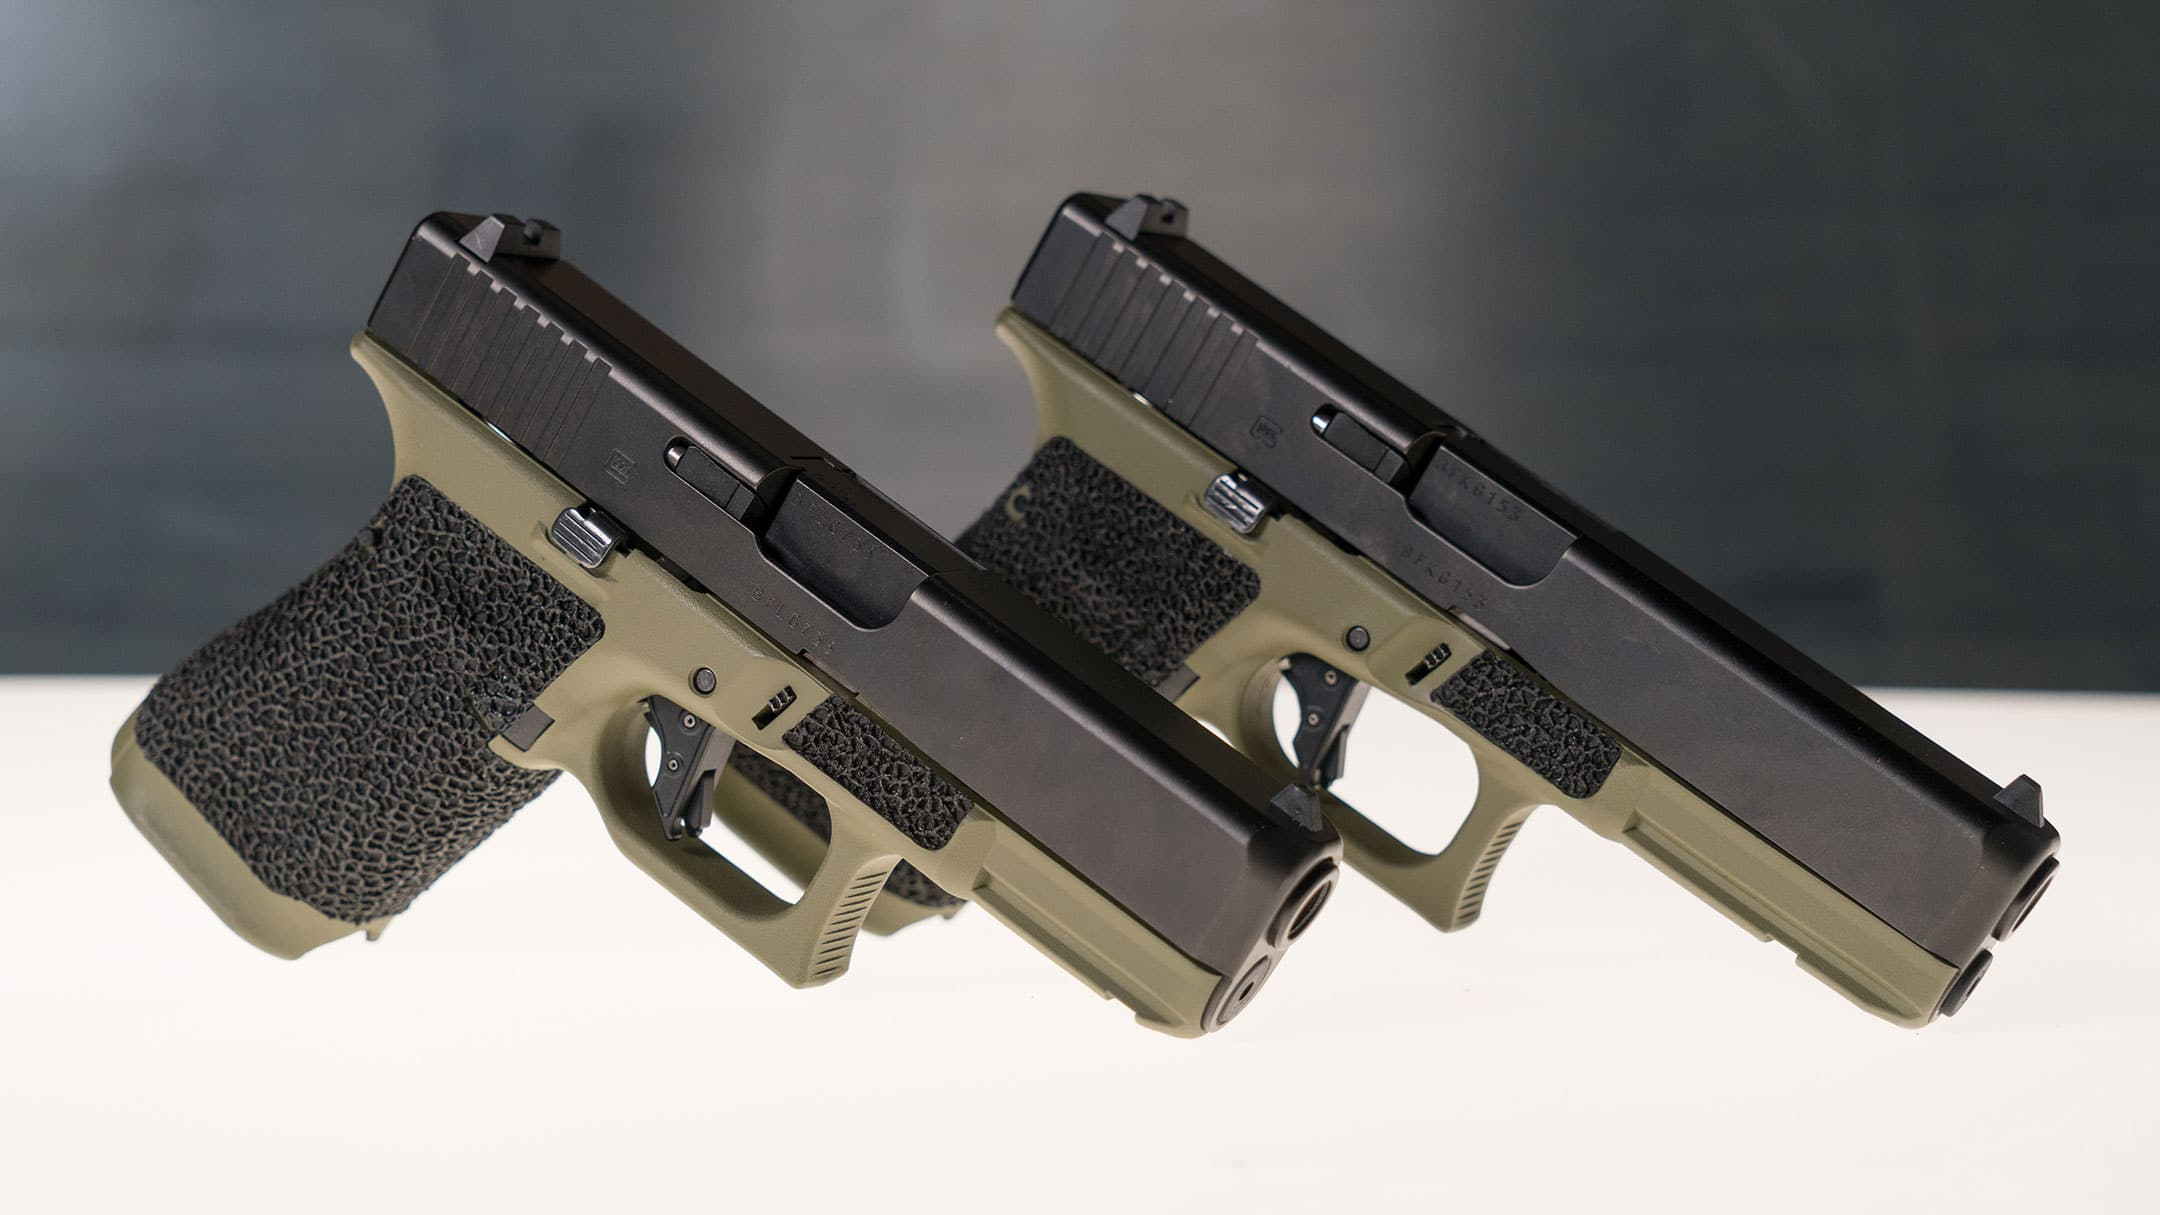 aftermarket glock slides on two glock models in 2019